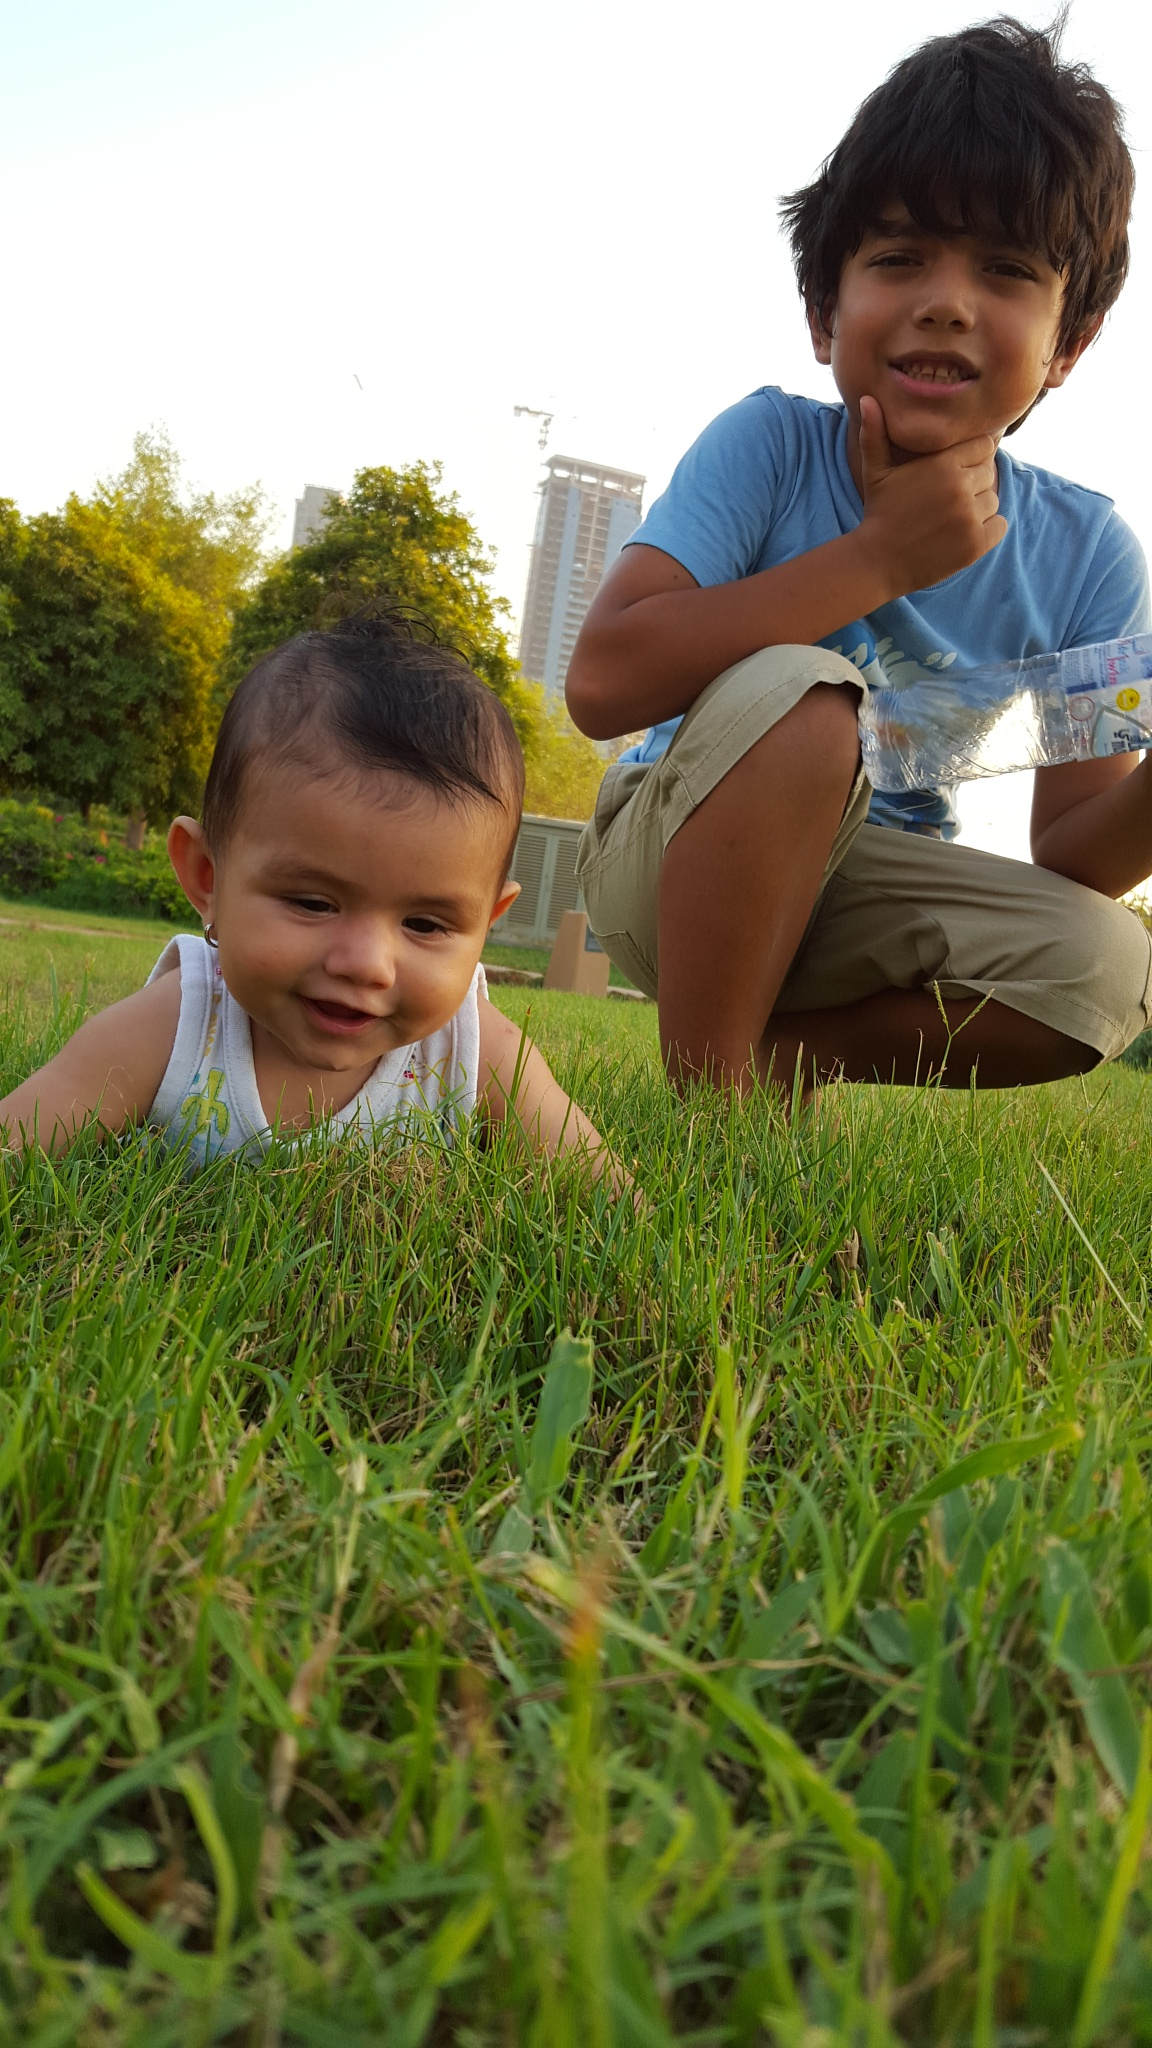 on the grass by Zaid Ibrahim